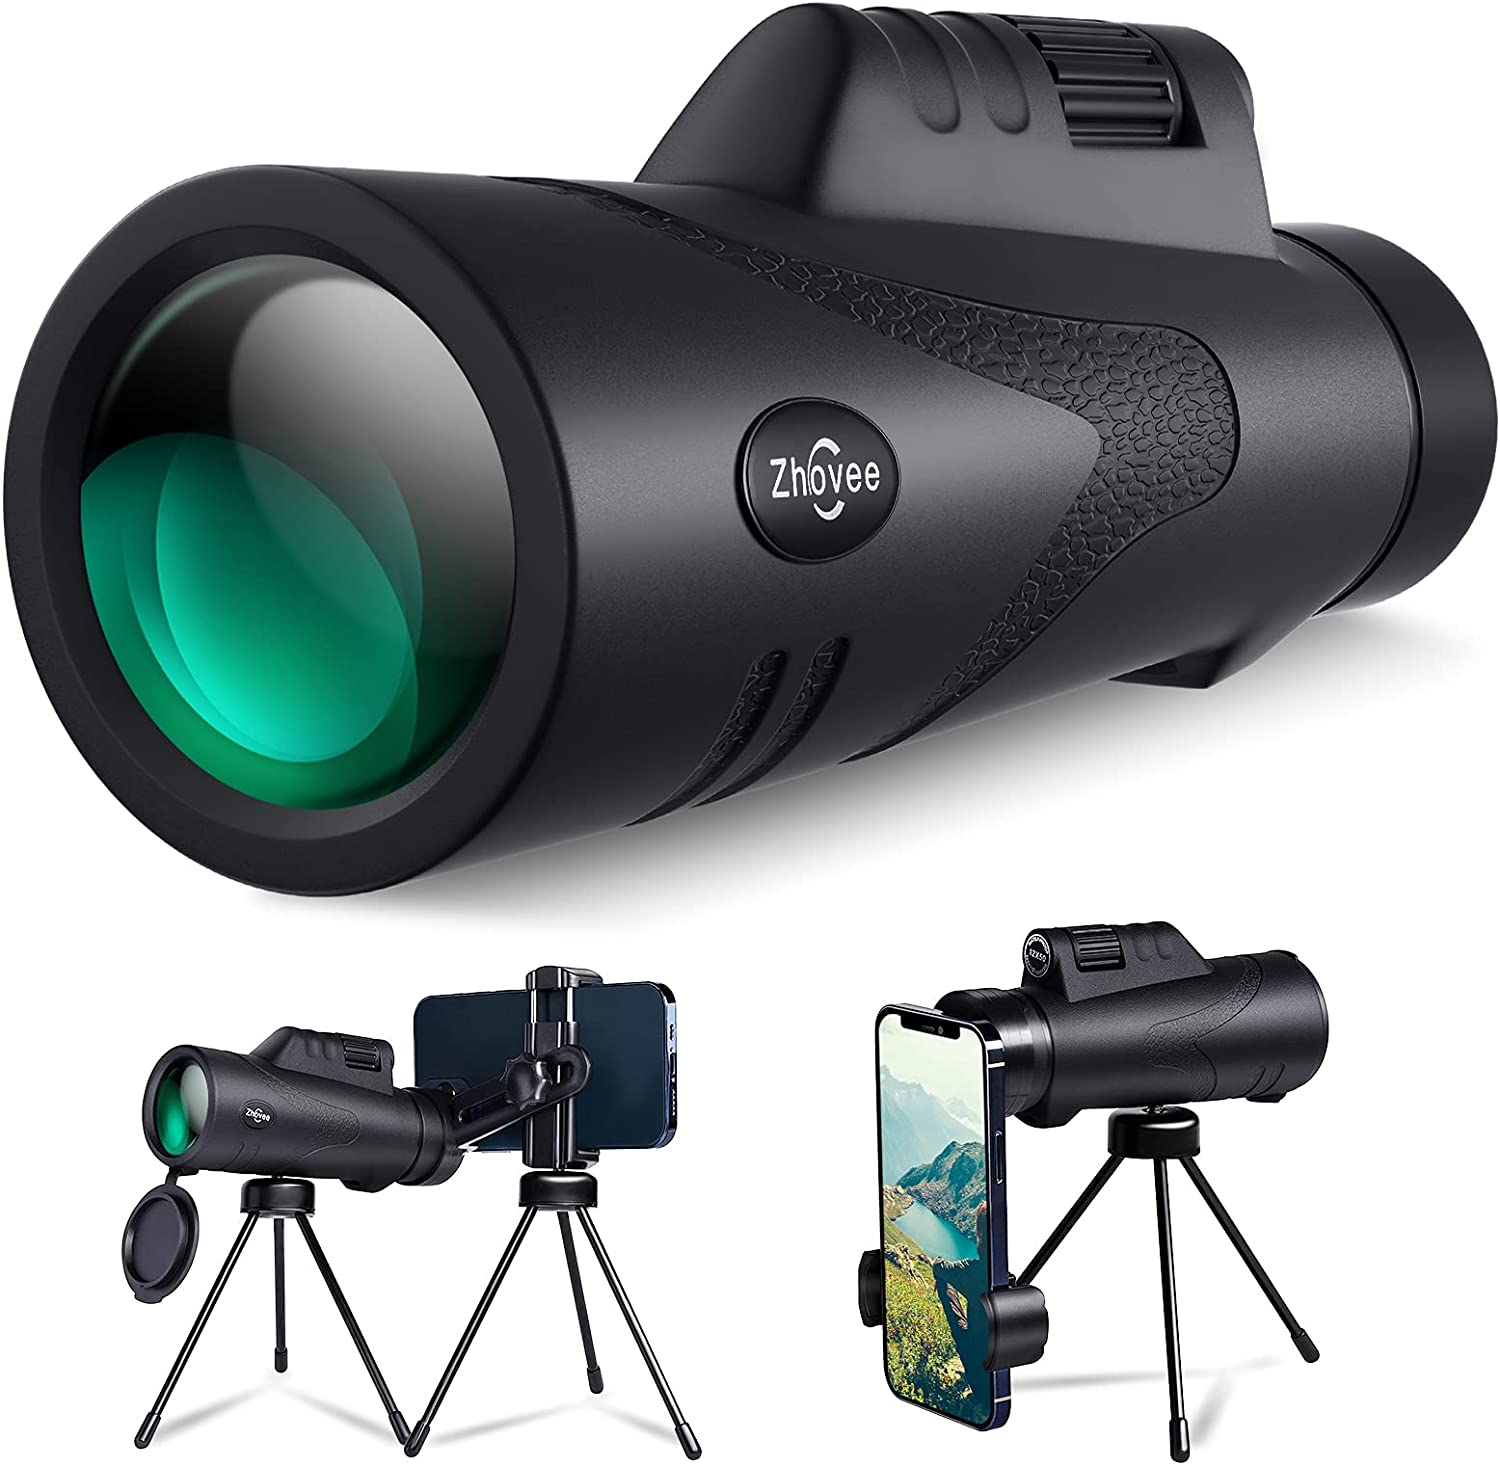 Monocular Excellent Spring new work one after another Telescope 12X50 HD Monoscope with Adapter Ha 2 Tripod